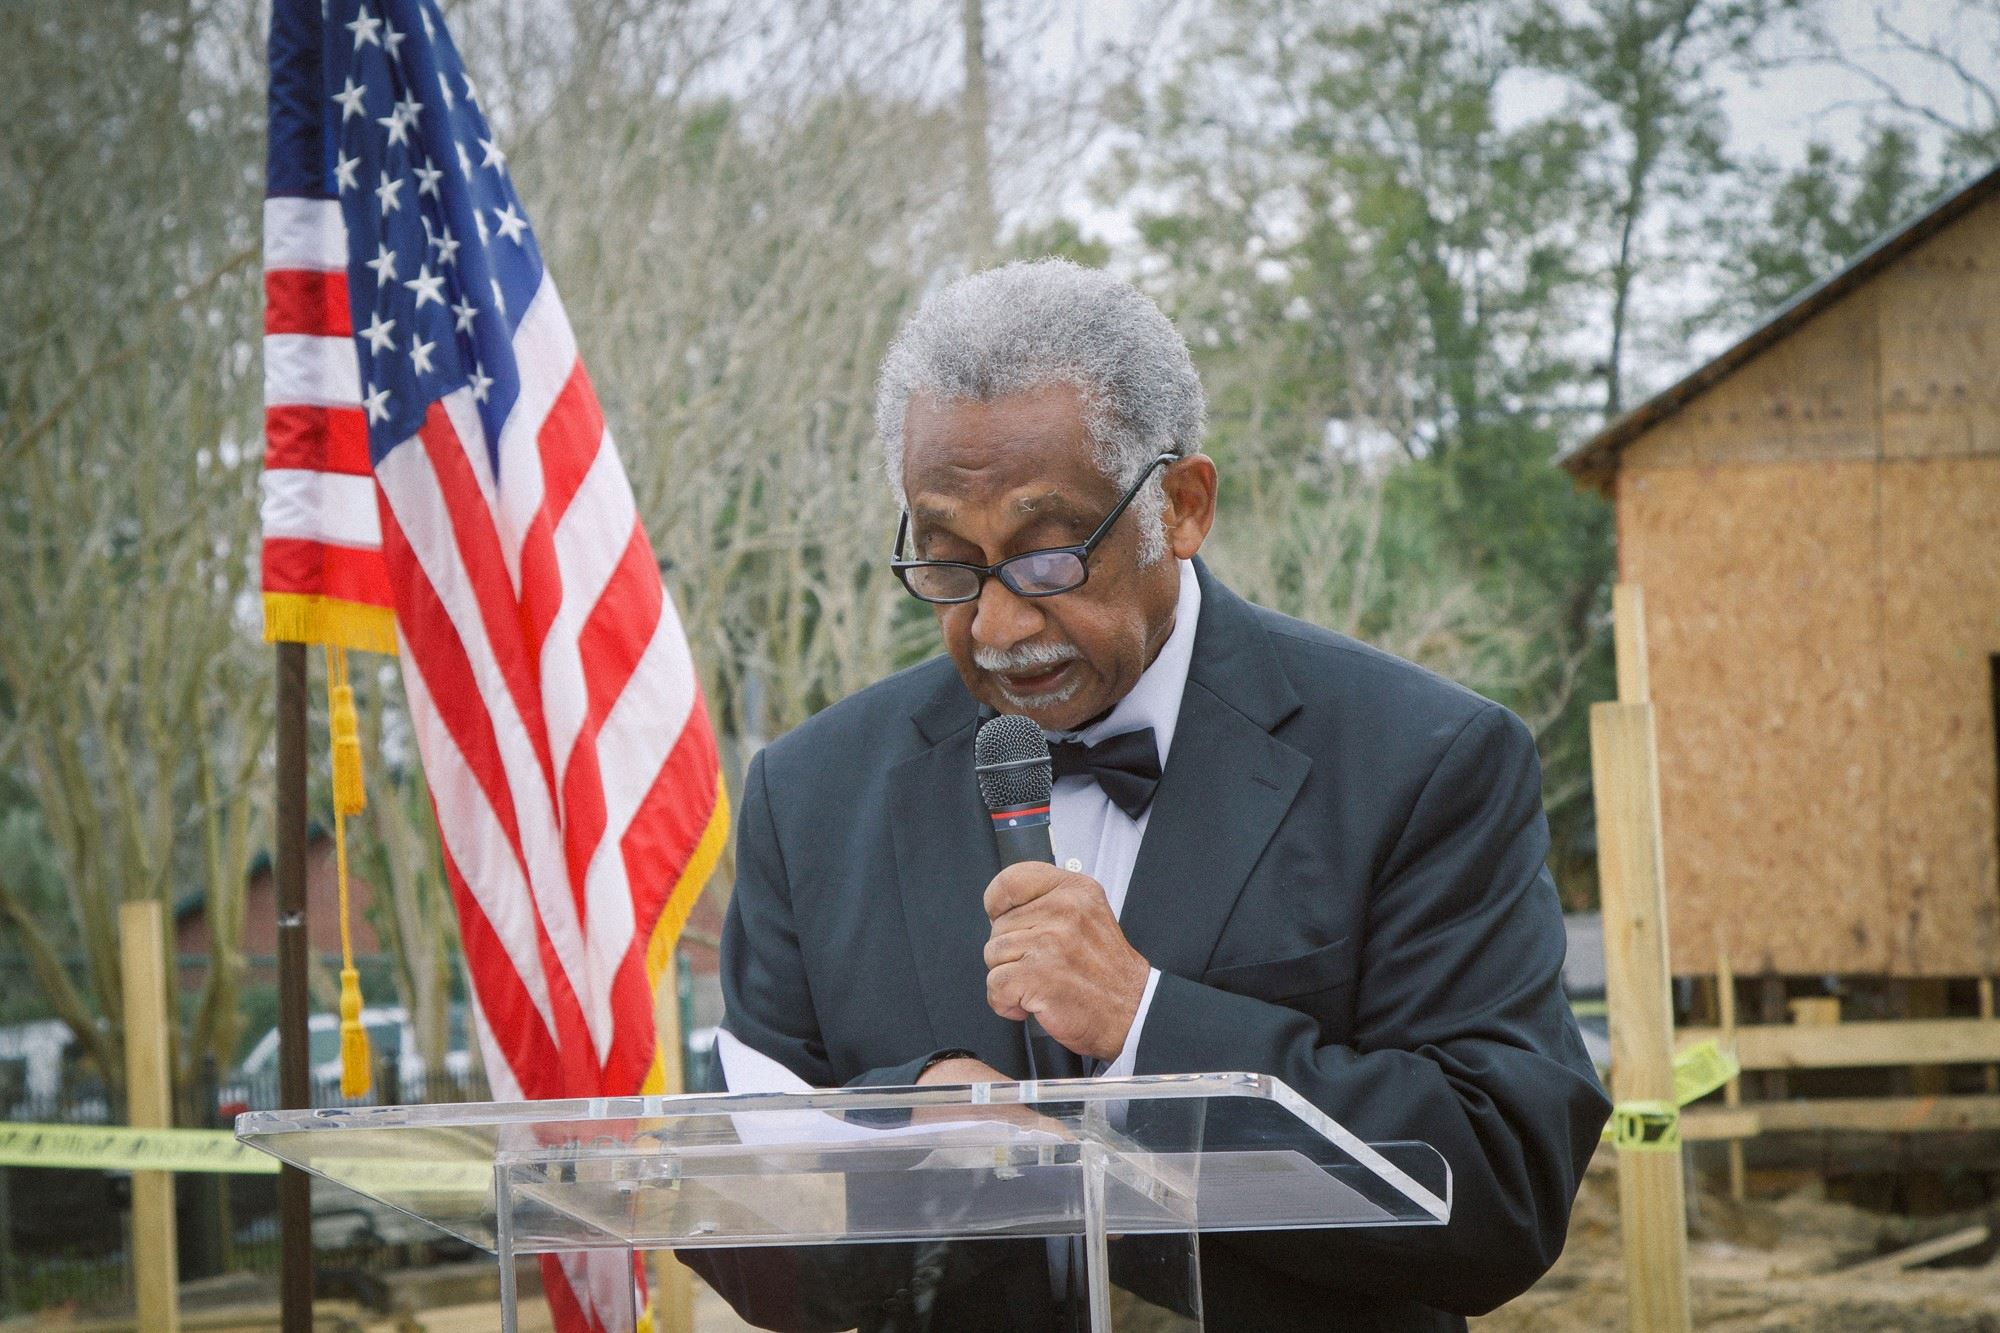 Councilman Wingate at Chappie James Ceremony